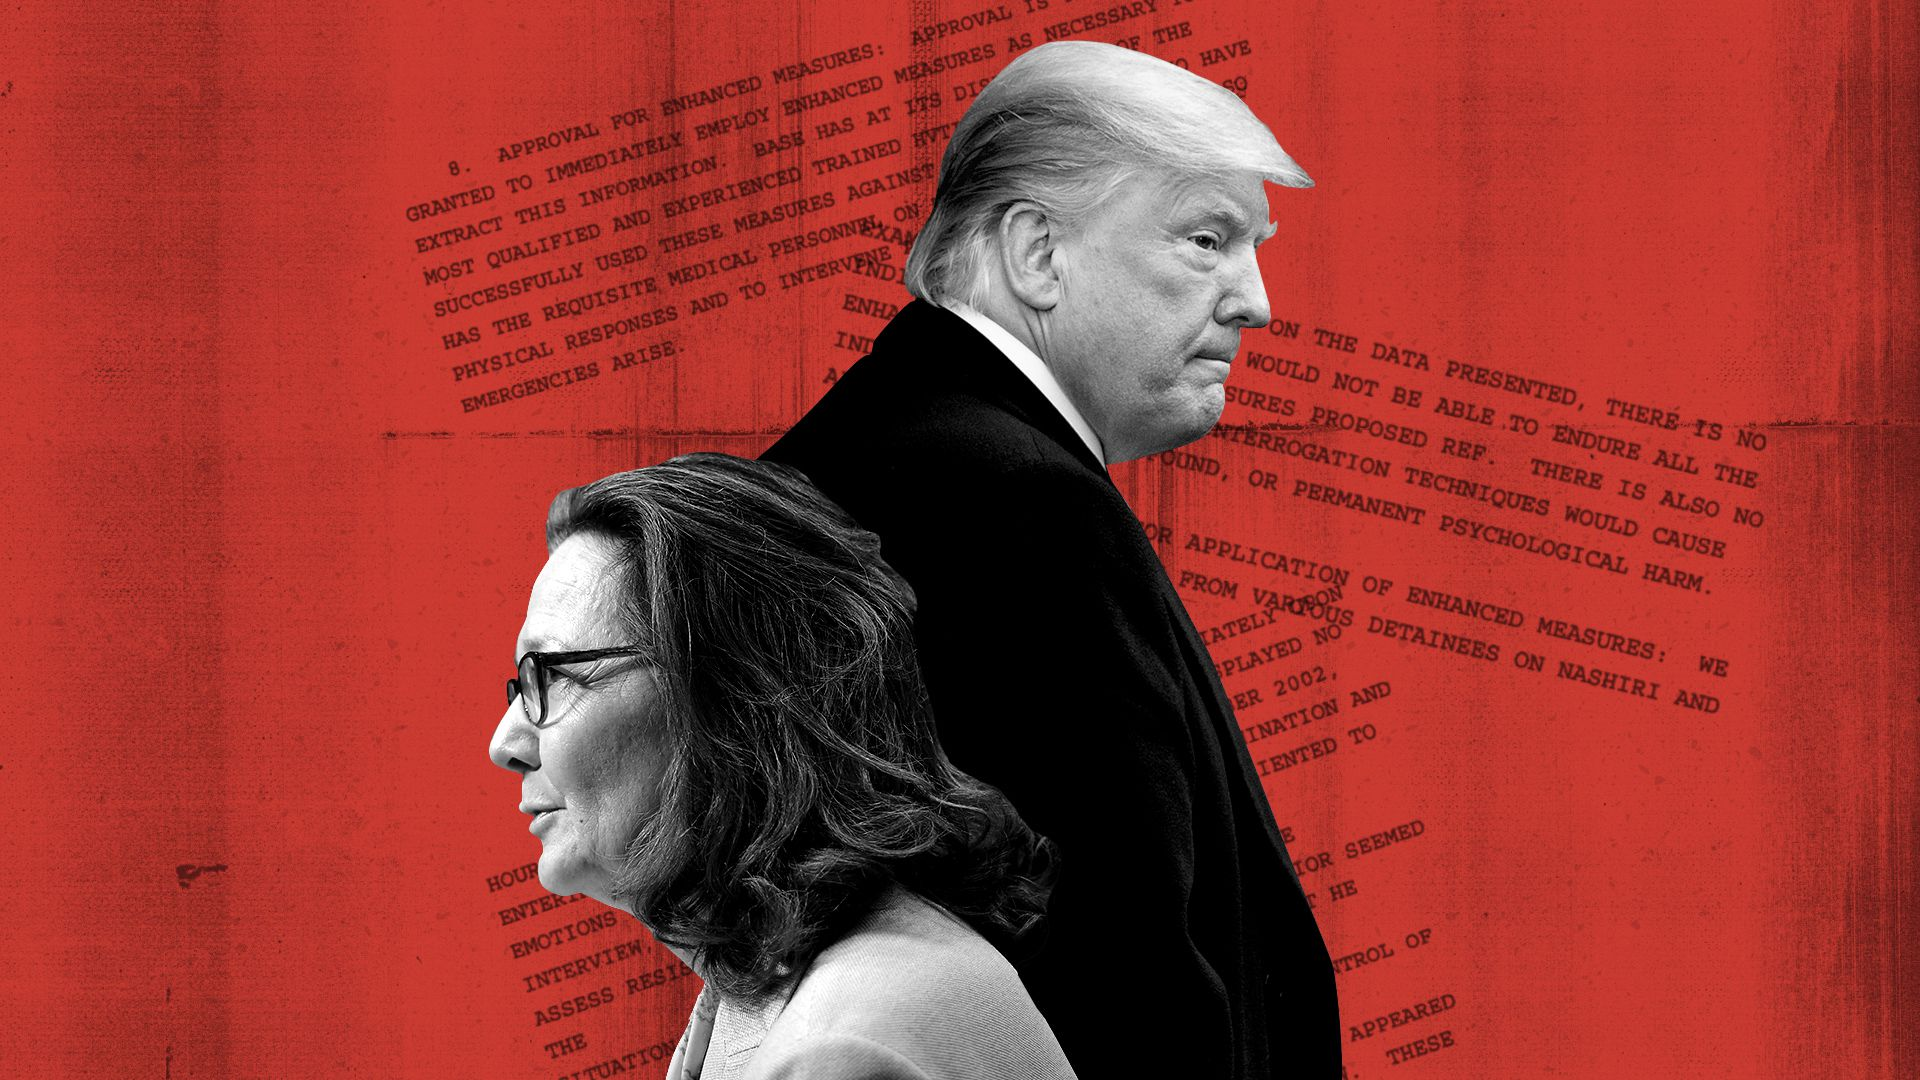 Photo illustration collage of Gina Haspel, President Donald Trump, and excerpts from Gina Haspel's declassified torture cables.